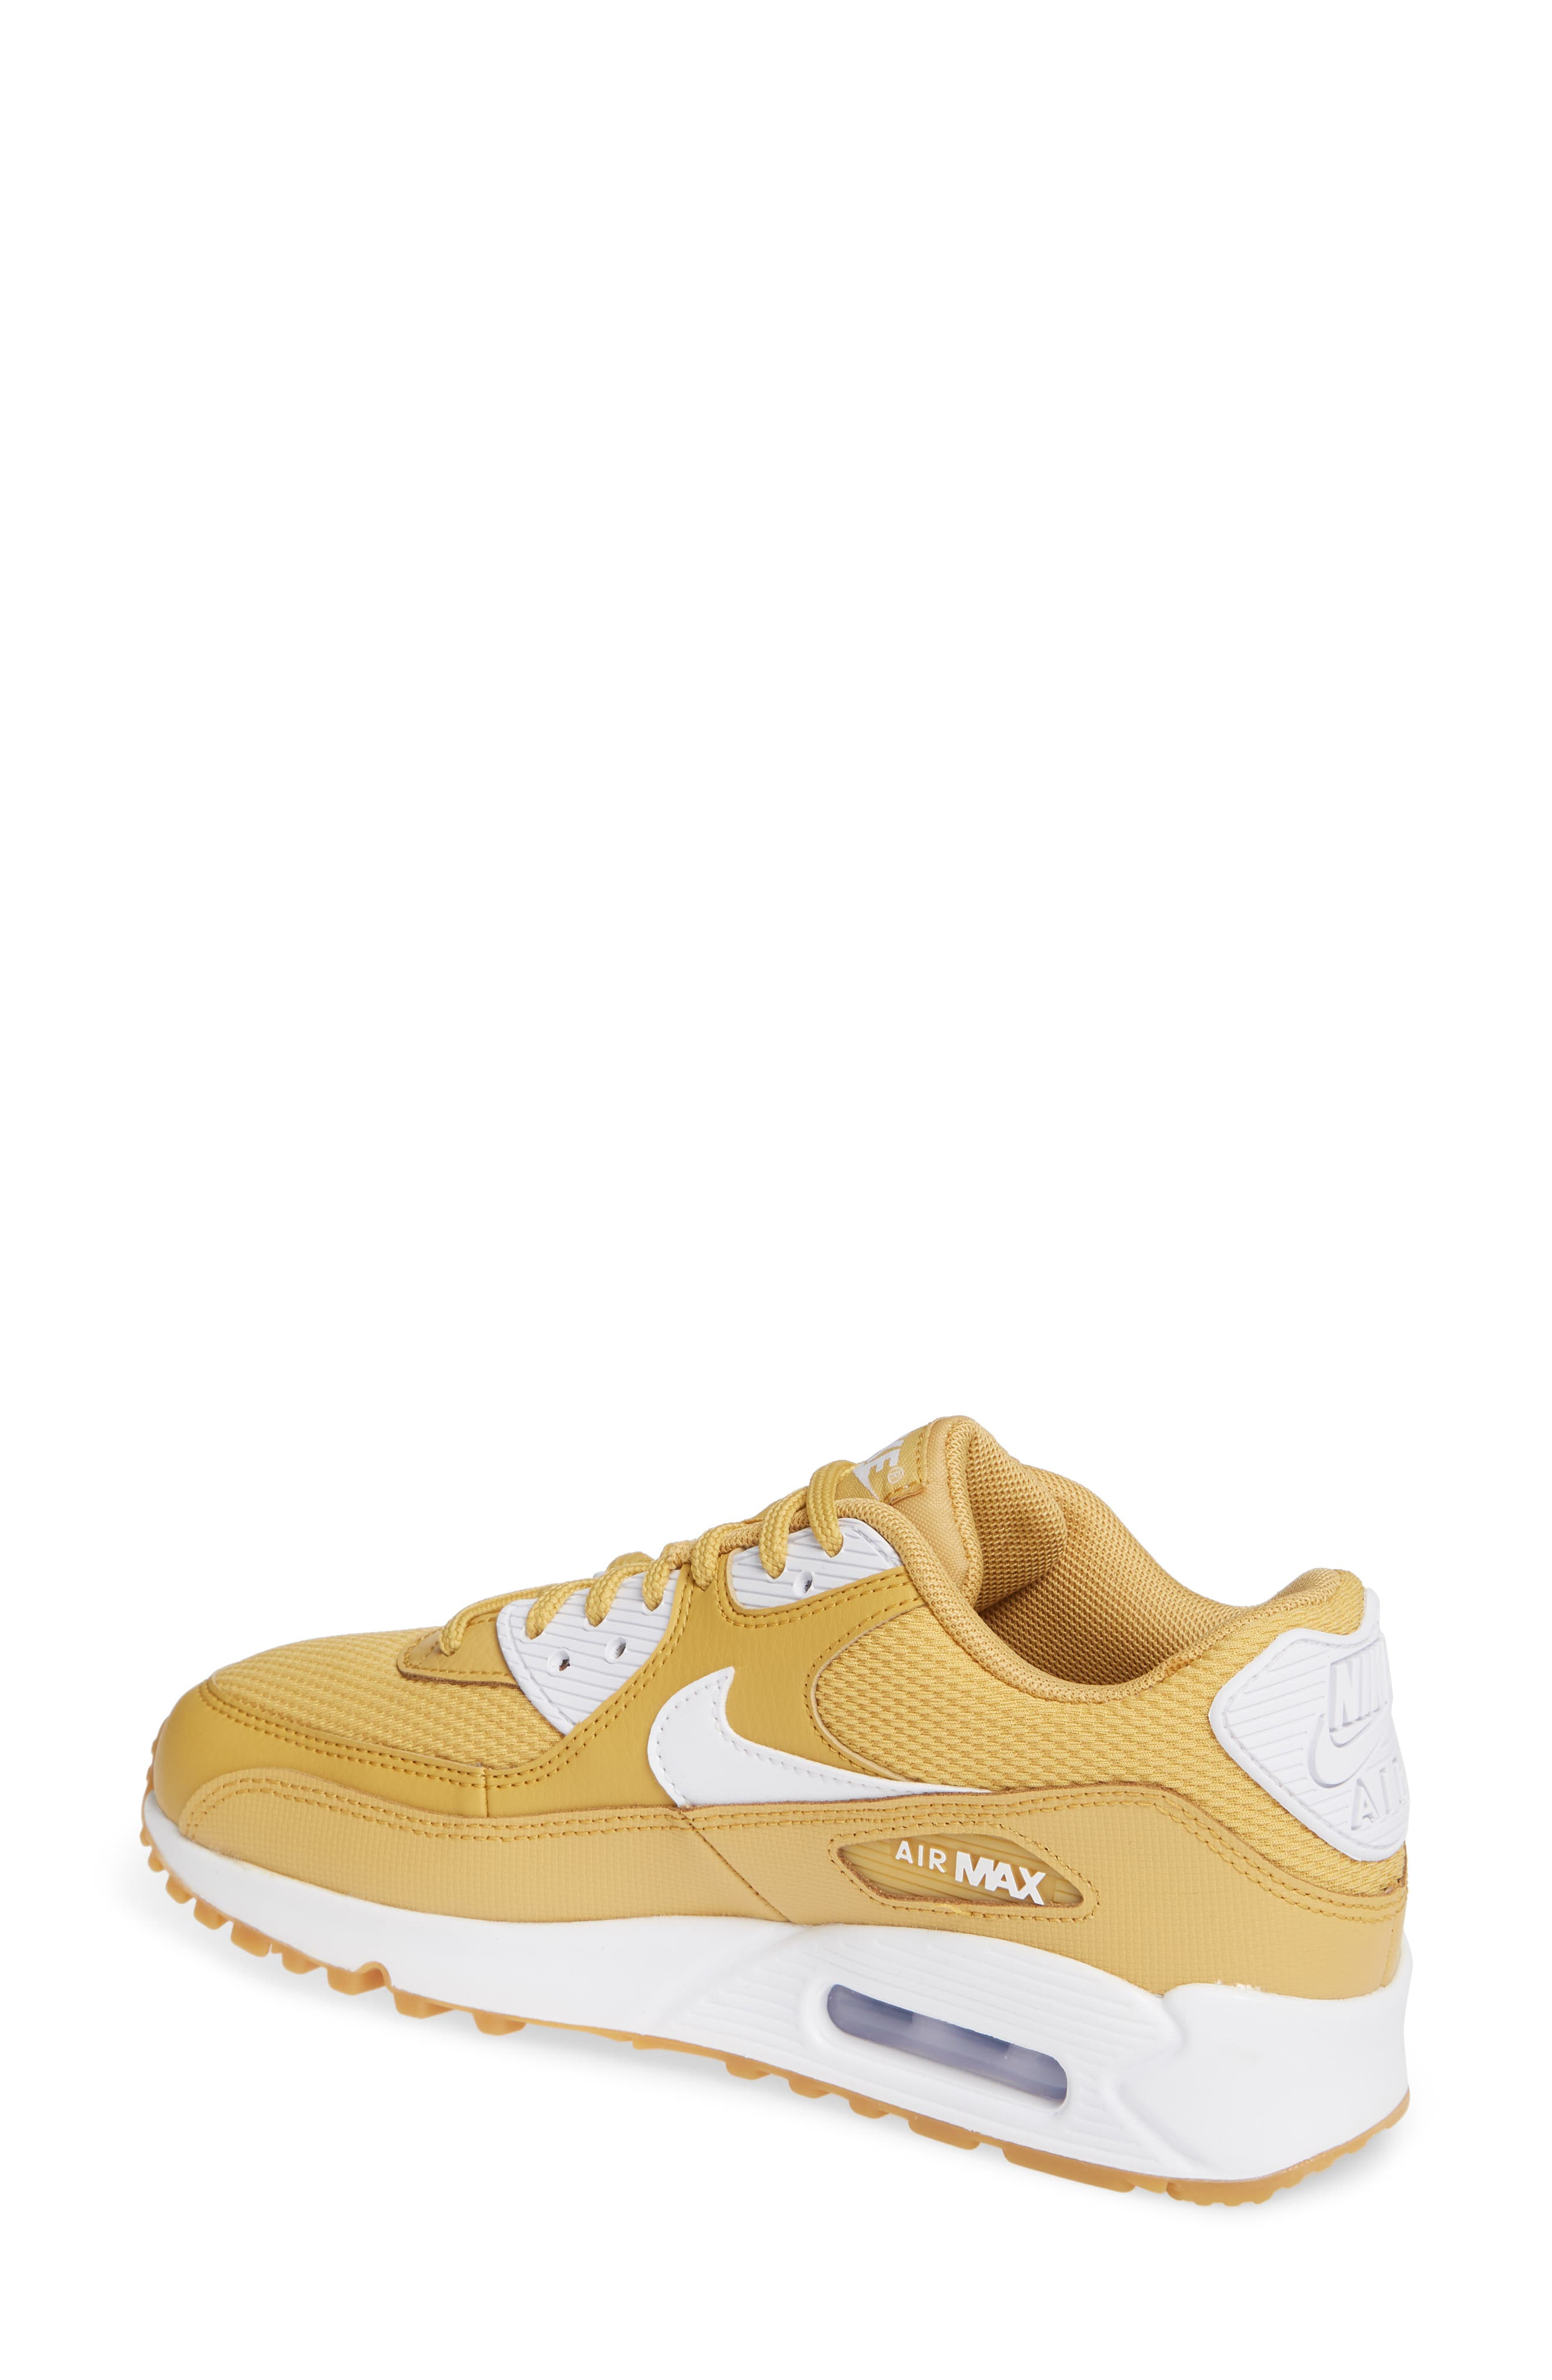 'Air Max 90' Sneaker,                             Alternate thumbnail 2, color,                             WHEAT GOLD/ WHITE/ LIGHT BROWN